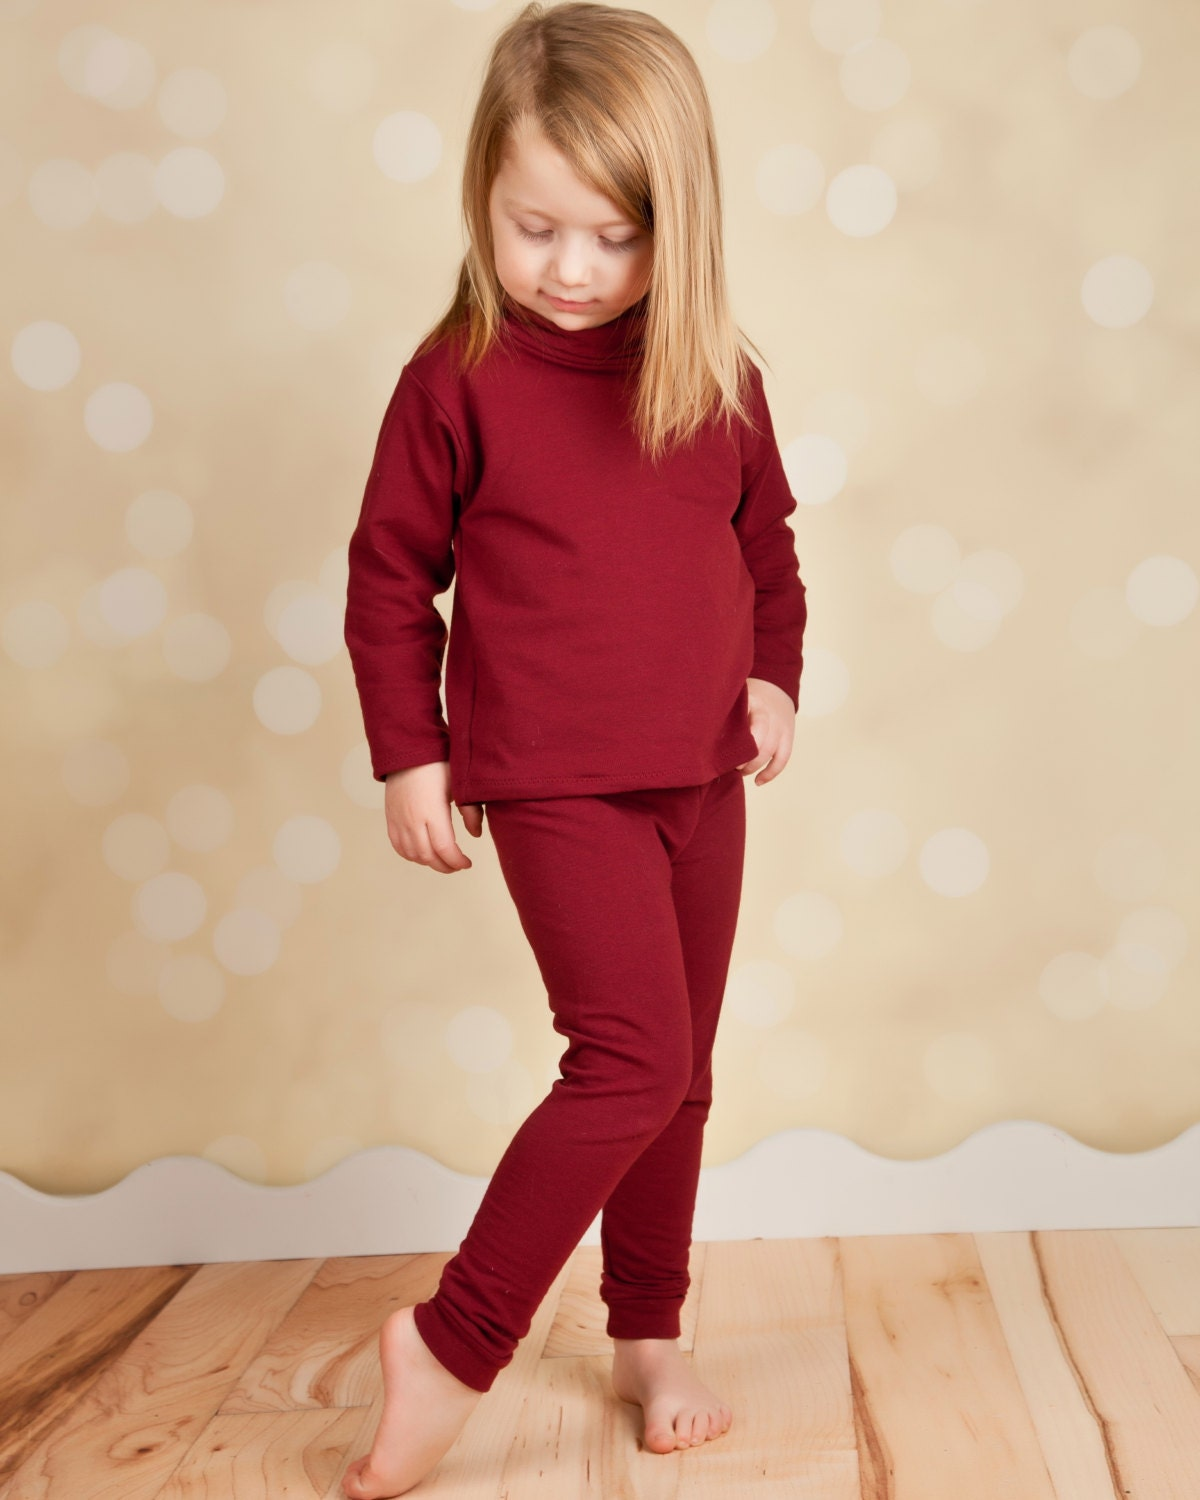 Bonnie Jean Little Girls Aqua Silver Star Glitter Tunic Tights Outfit T. Carter's Little Girls' 2-Pack Tights, Black, Silver White Stripe, Sold by 4 Nicky Noodles. $ $ Bonnie Jean Little Girls Aqua Silver Star Glitter Tunic Tights Outfit T.